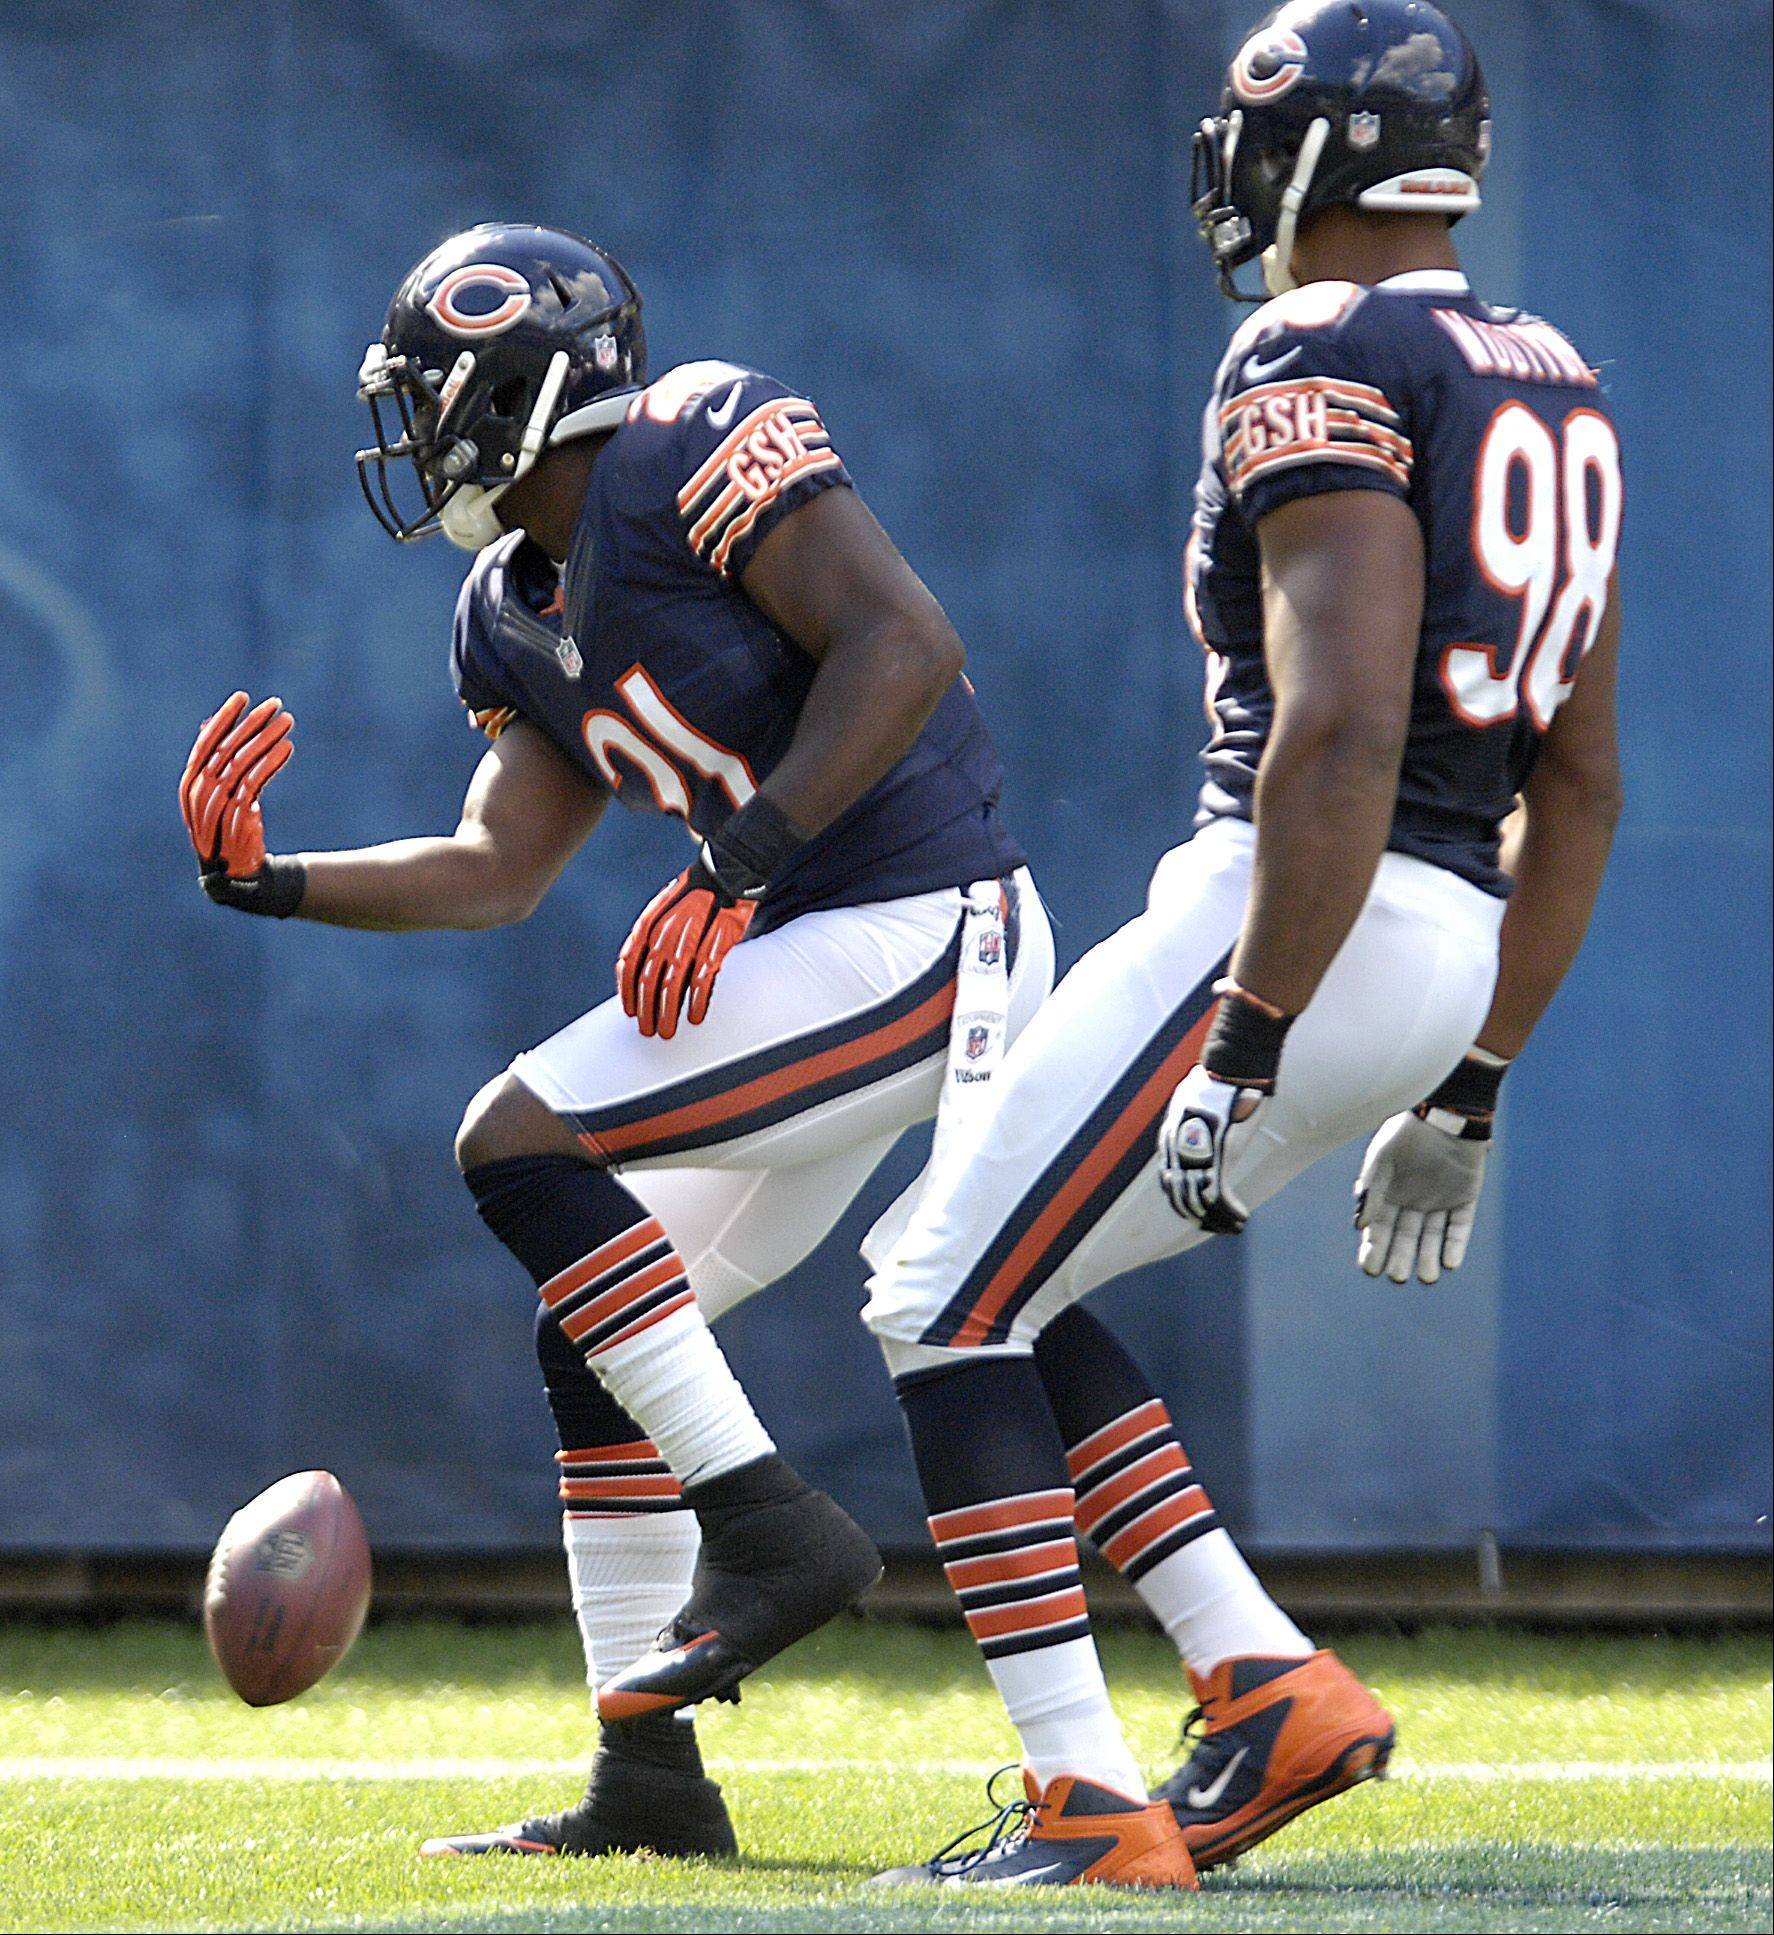 Chicago Bears strong safety Major Wright celebrates his touchdown on an interception against the St. Louis Rams at Soldier Field in Chicago.